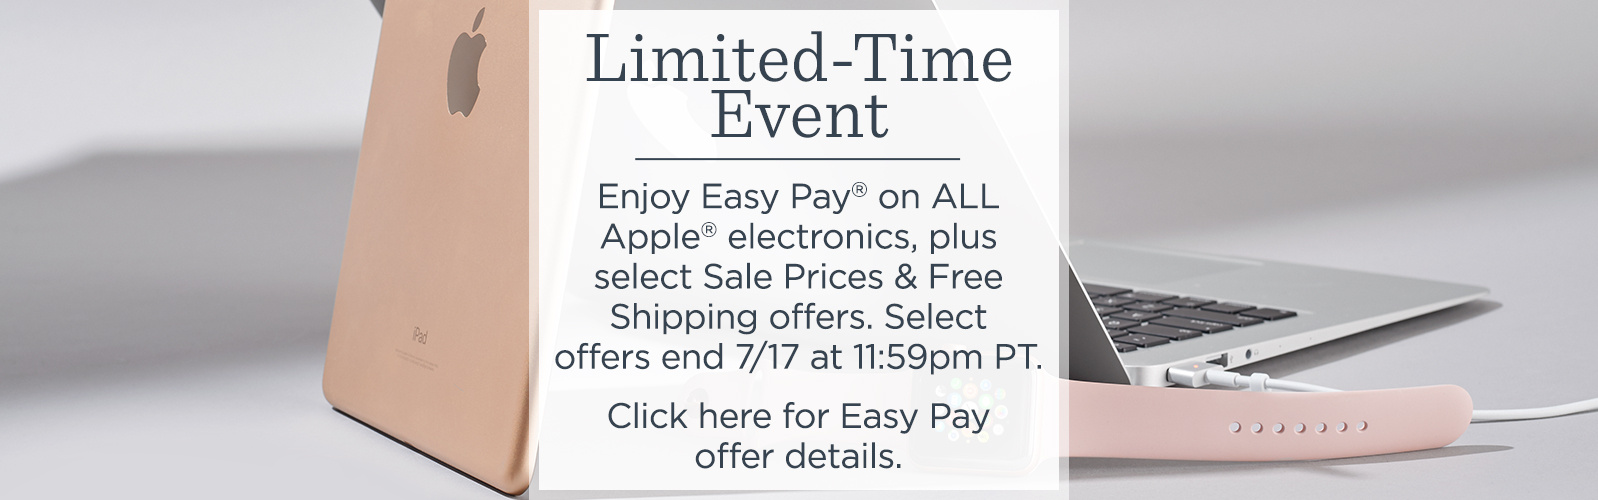 Limited-Time Event  Enjoy Easy Pay® on ALL Apple® electronics, plus select Sale Prices & Free Shipping offers. Select offers end 7/17 at 11:59pm PT.  Click here for Easy Pay offer details.